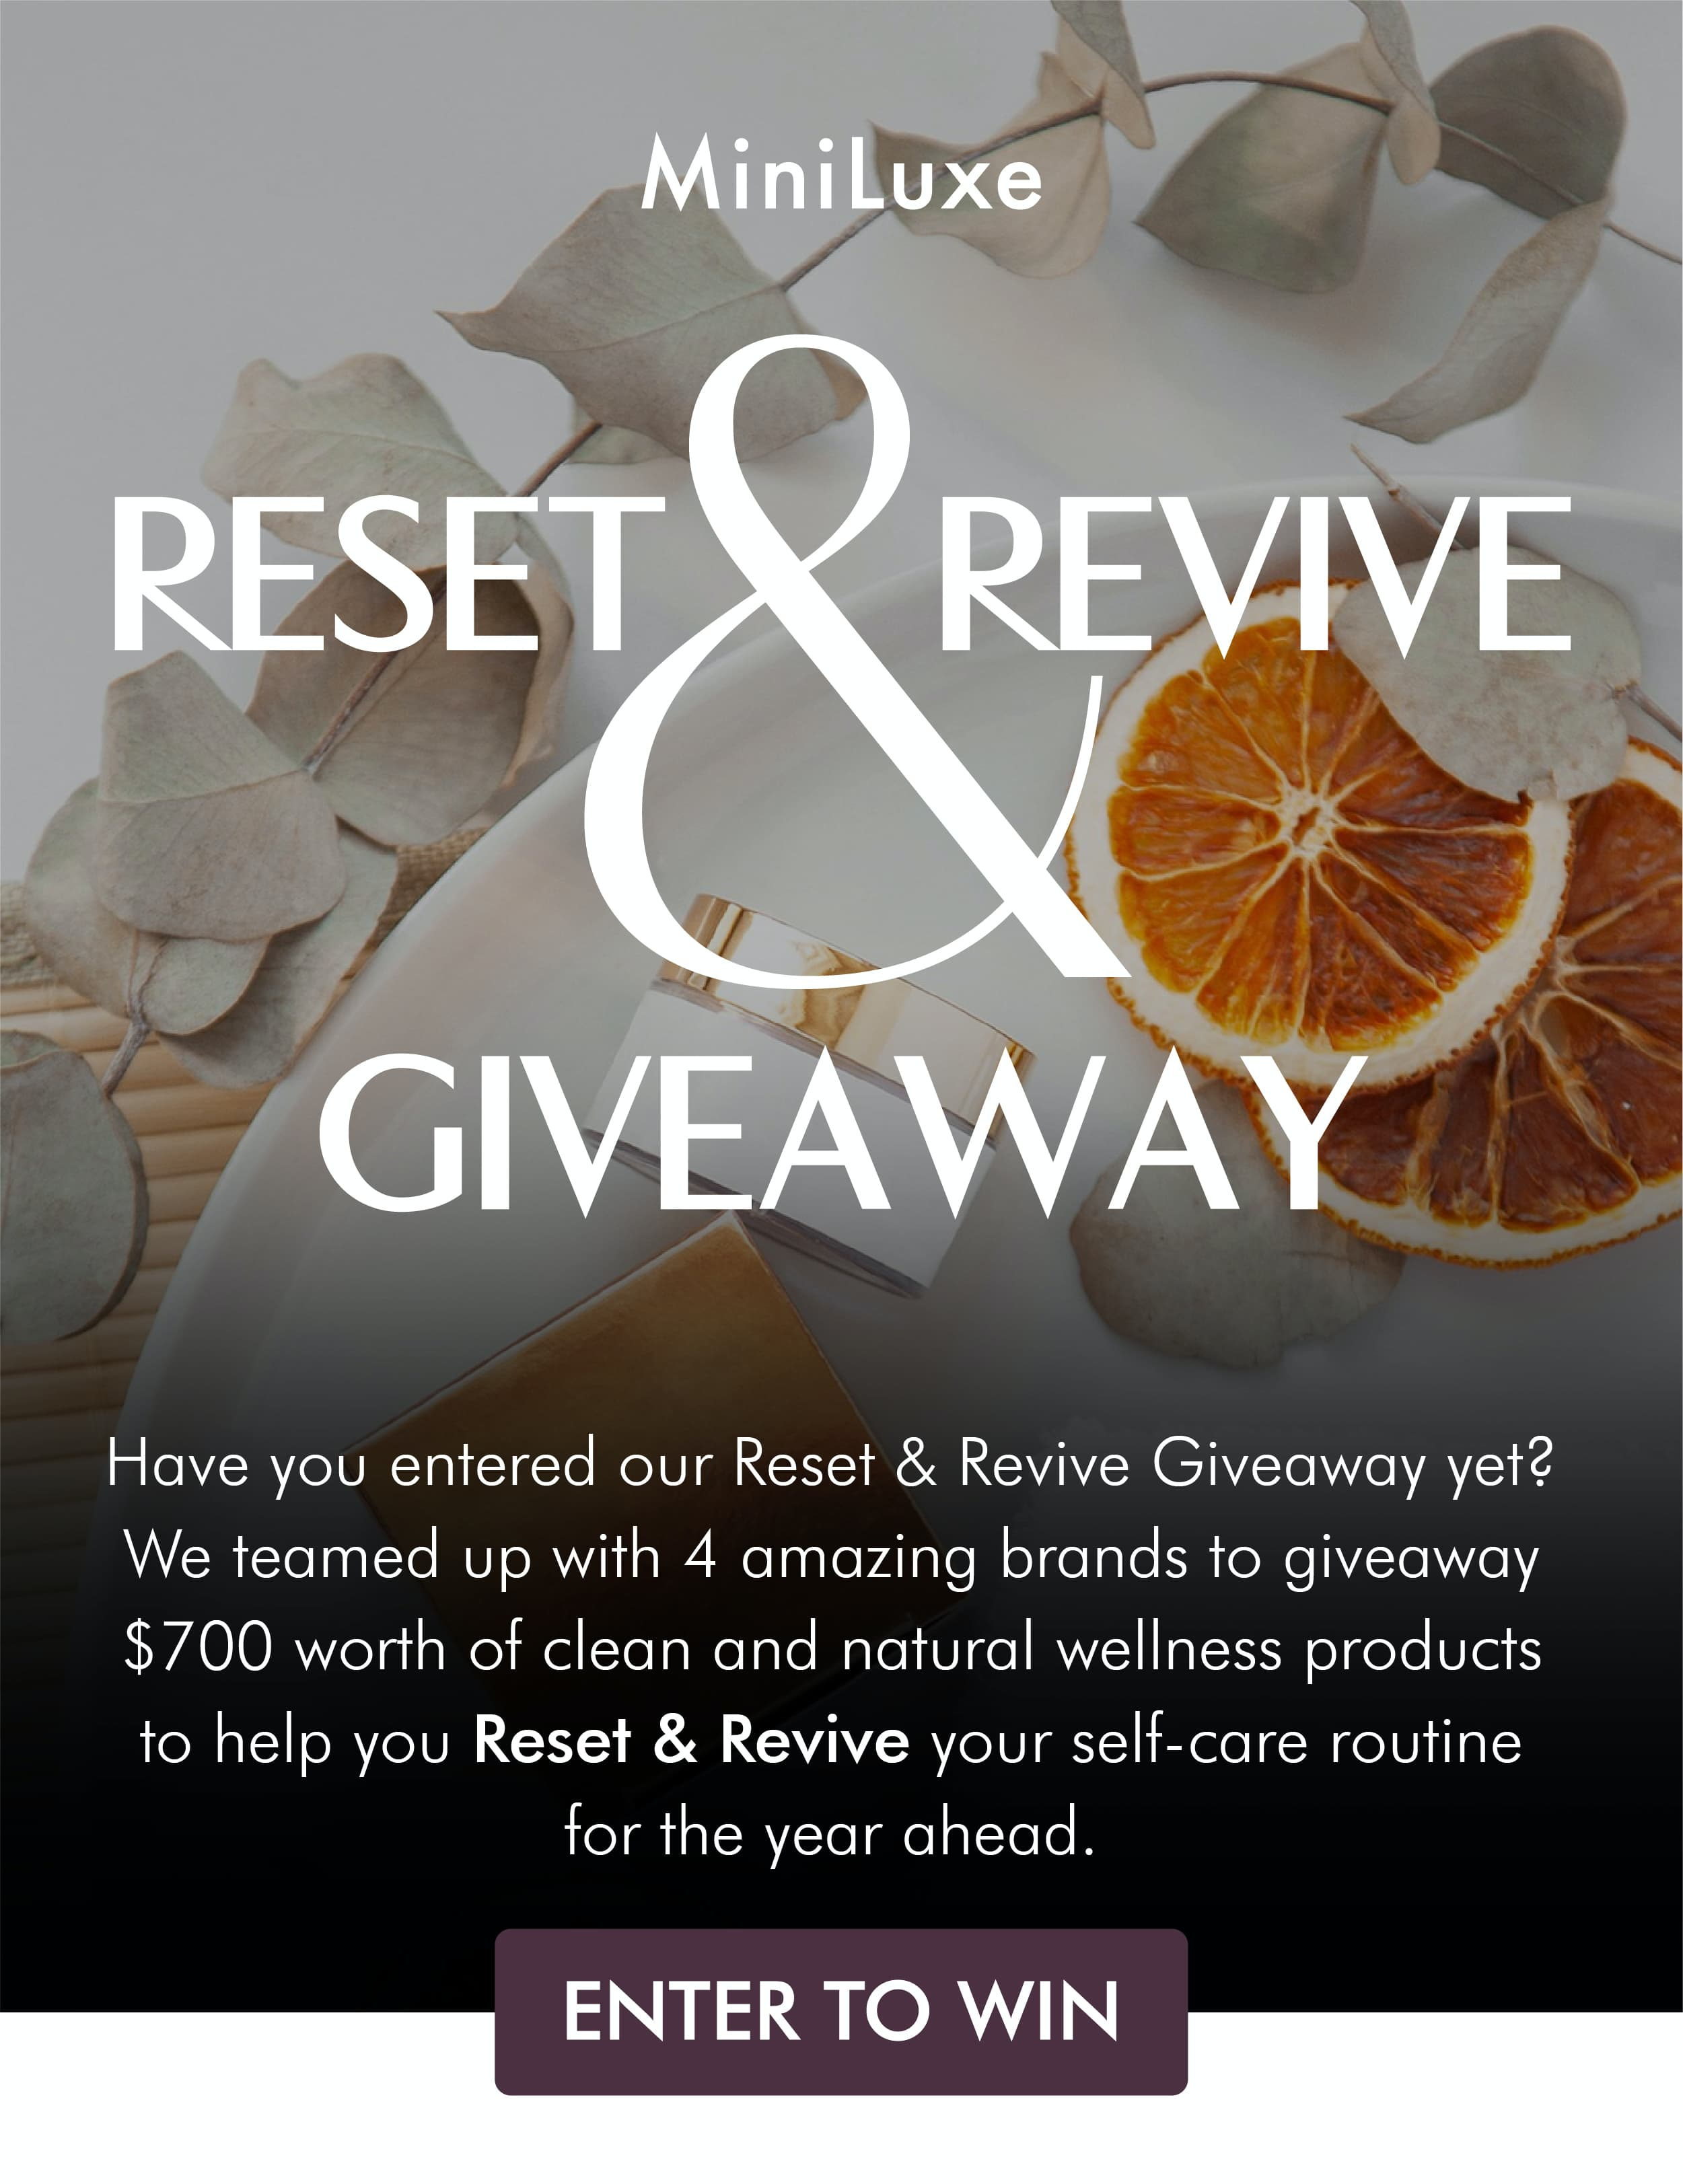 We're Teaming Up With 4 Amazing Brands To Giveaway $700 Worth Of Clean And Natural Wellness Products